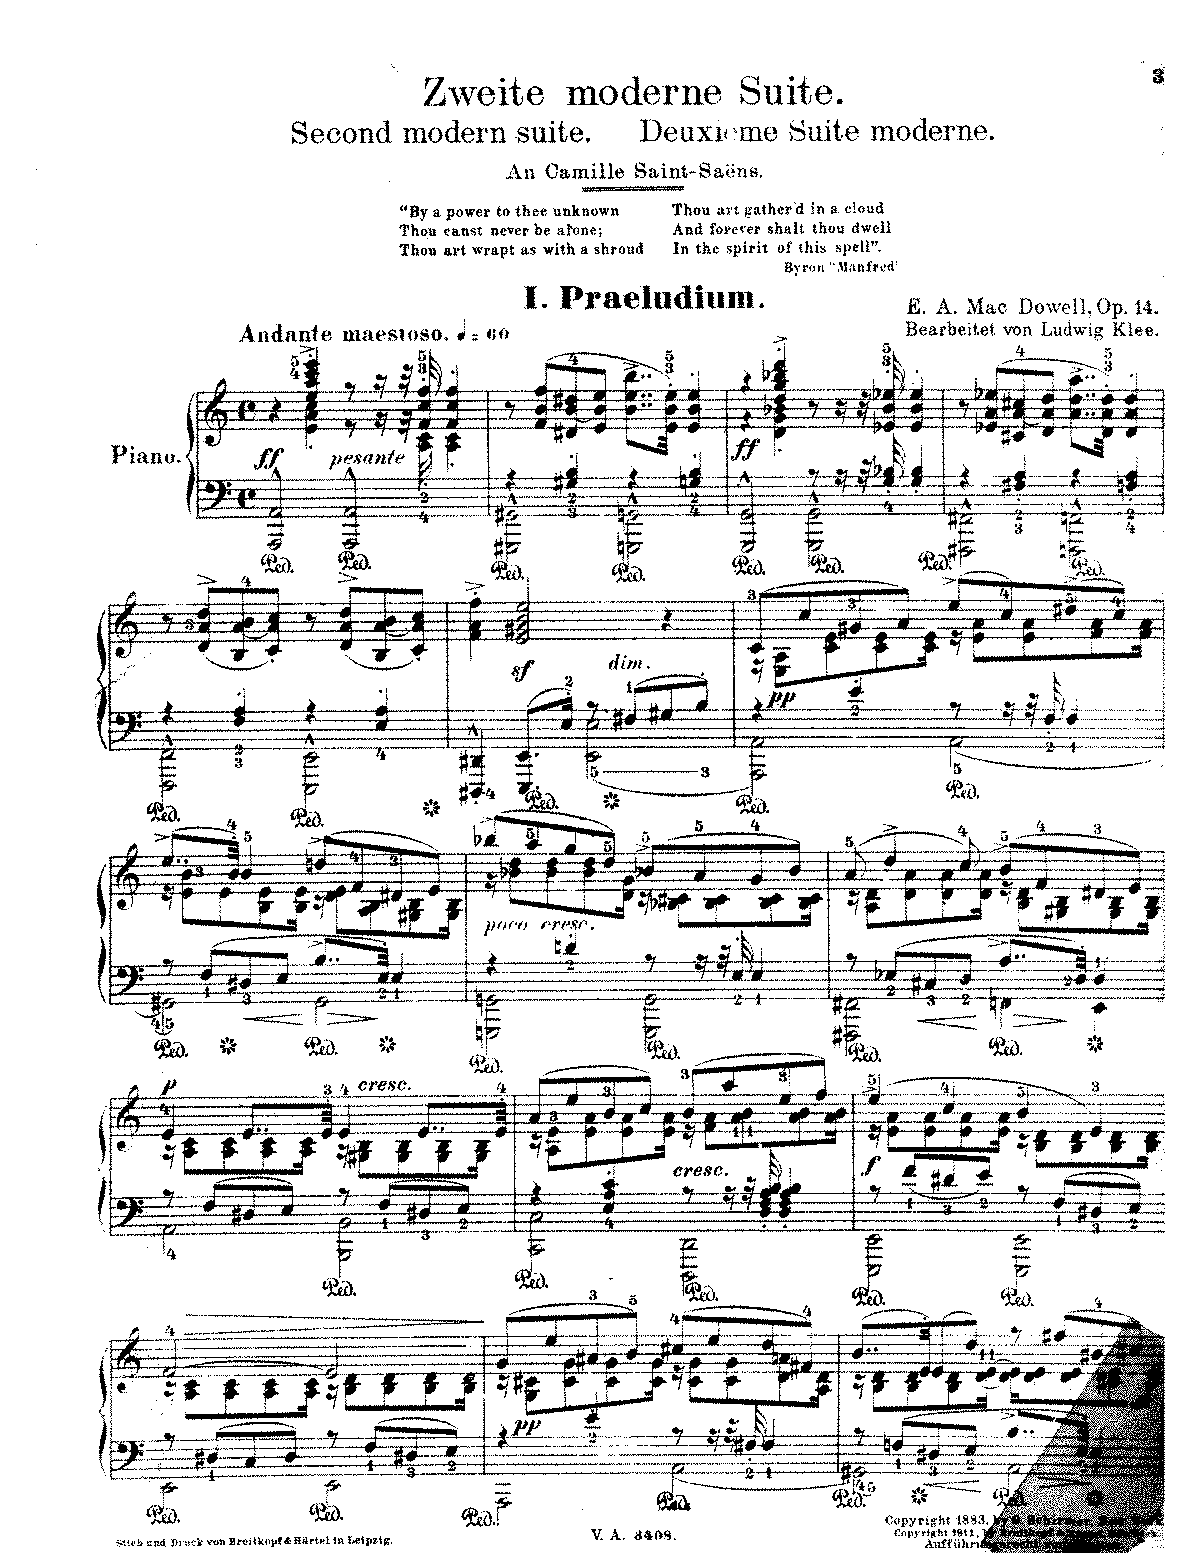 MacDowell - Op.14 - Second Modern Suite.pdf